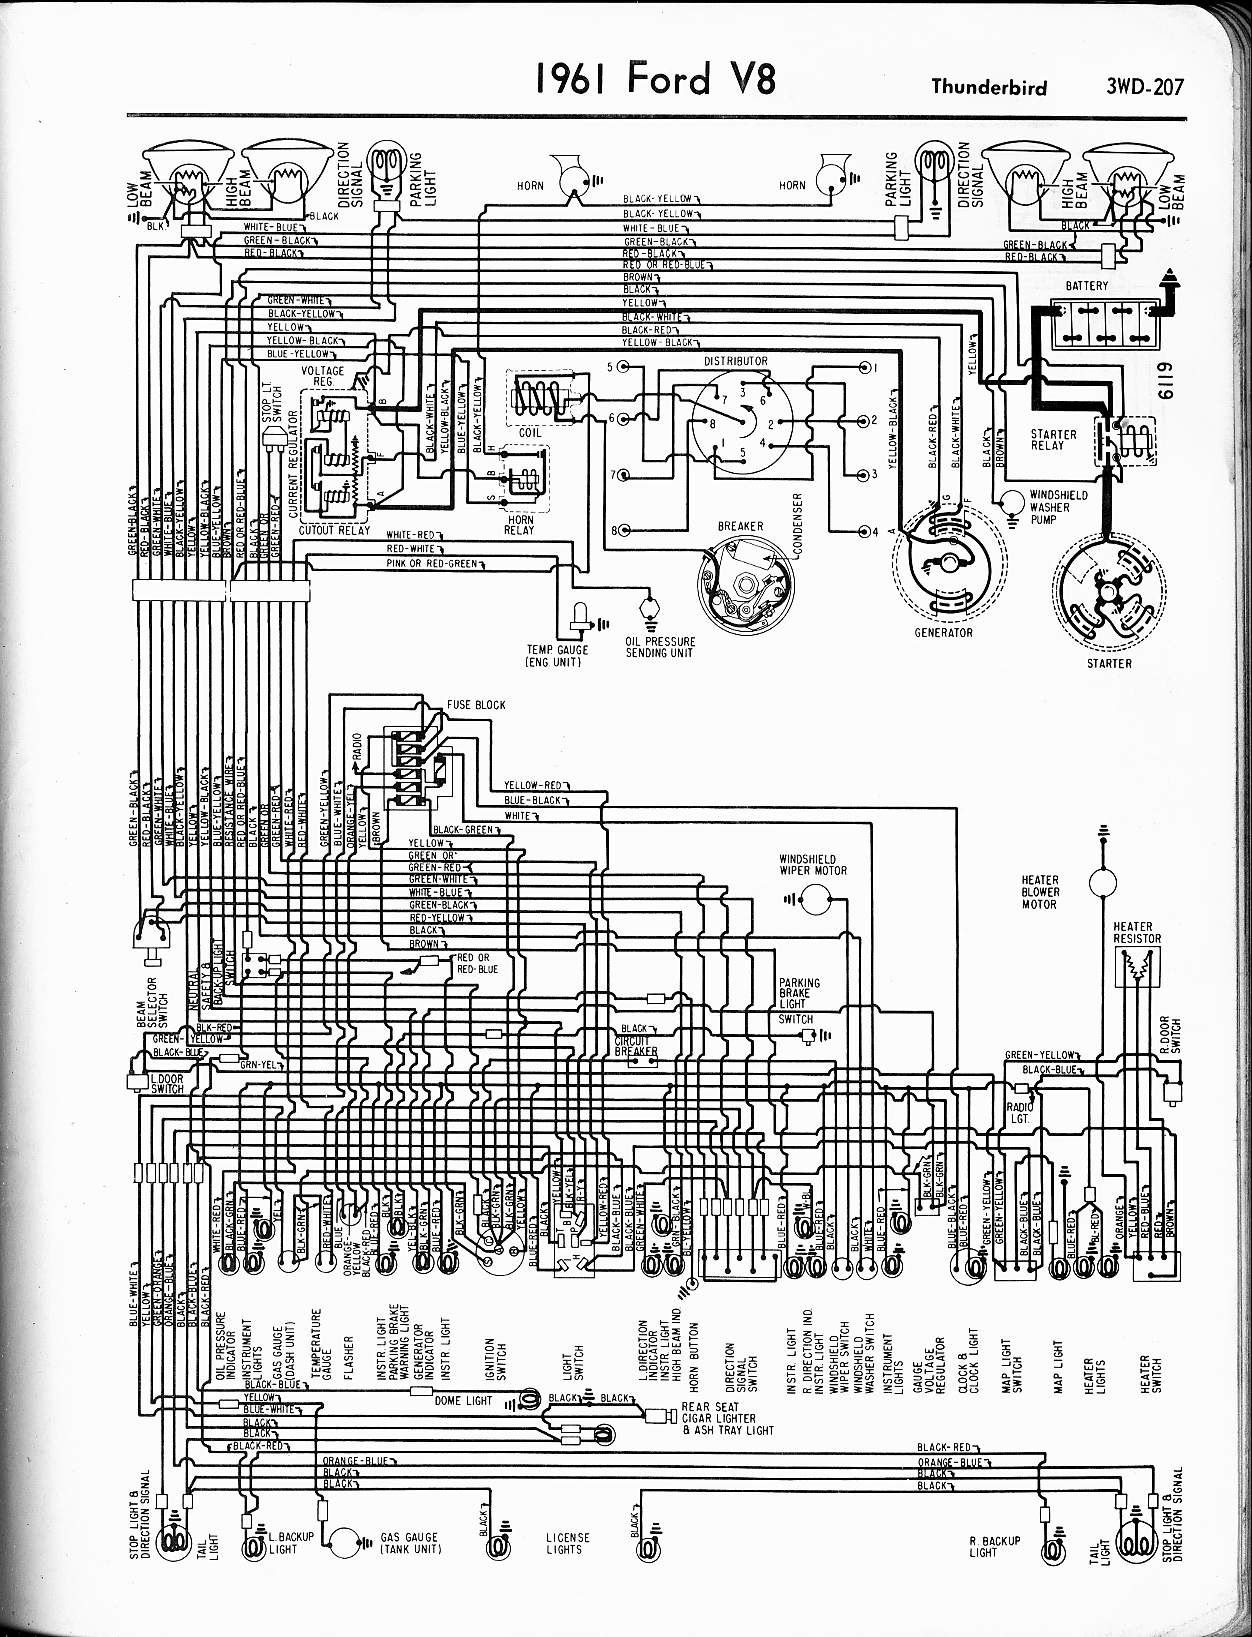 1954 Ford Customline Wiring Diagram Just Another Data Corvette 1956 Schemes 1949 Truck